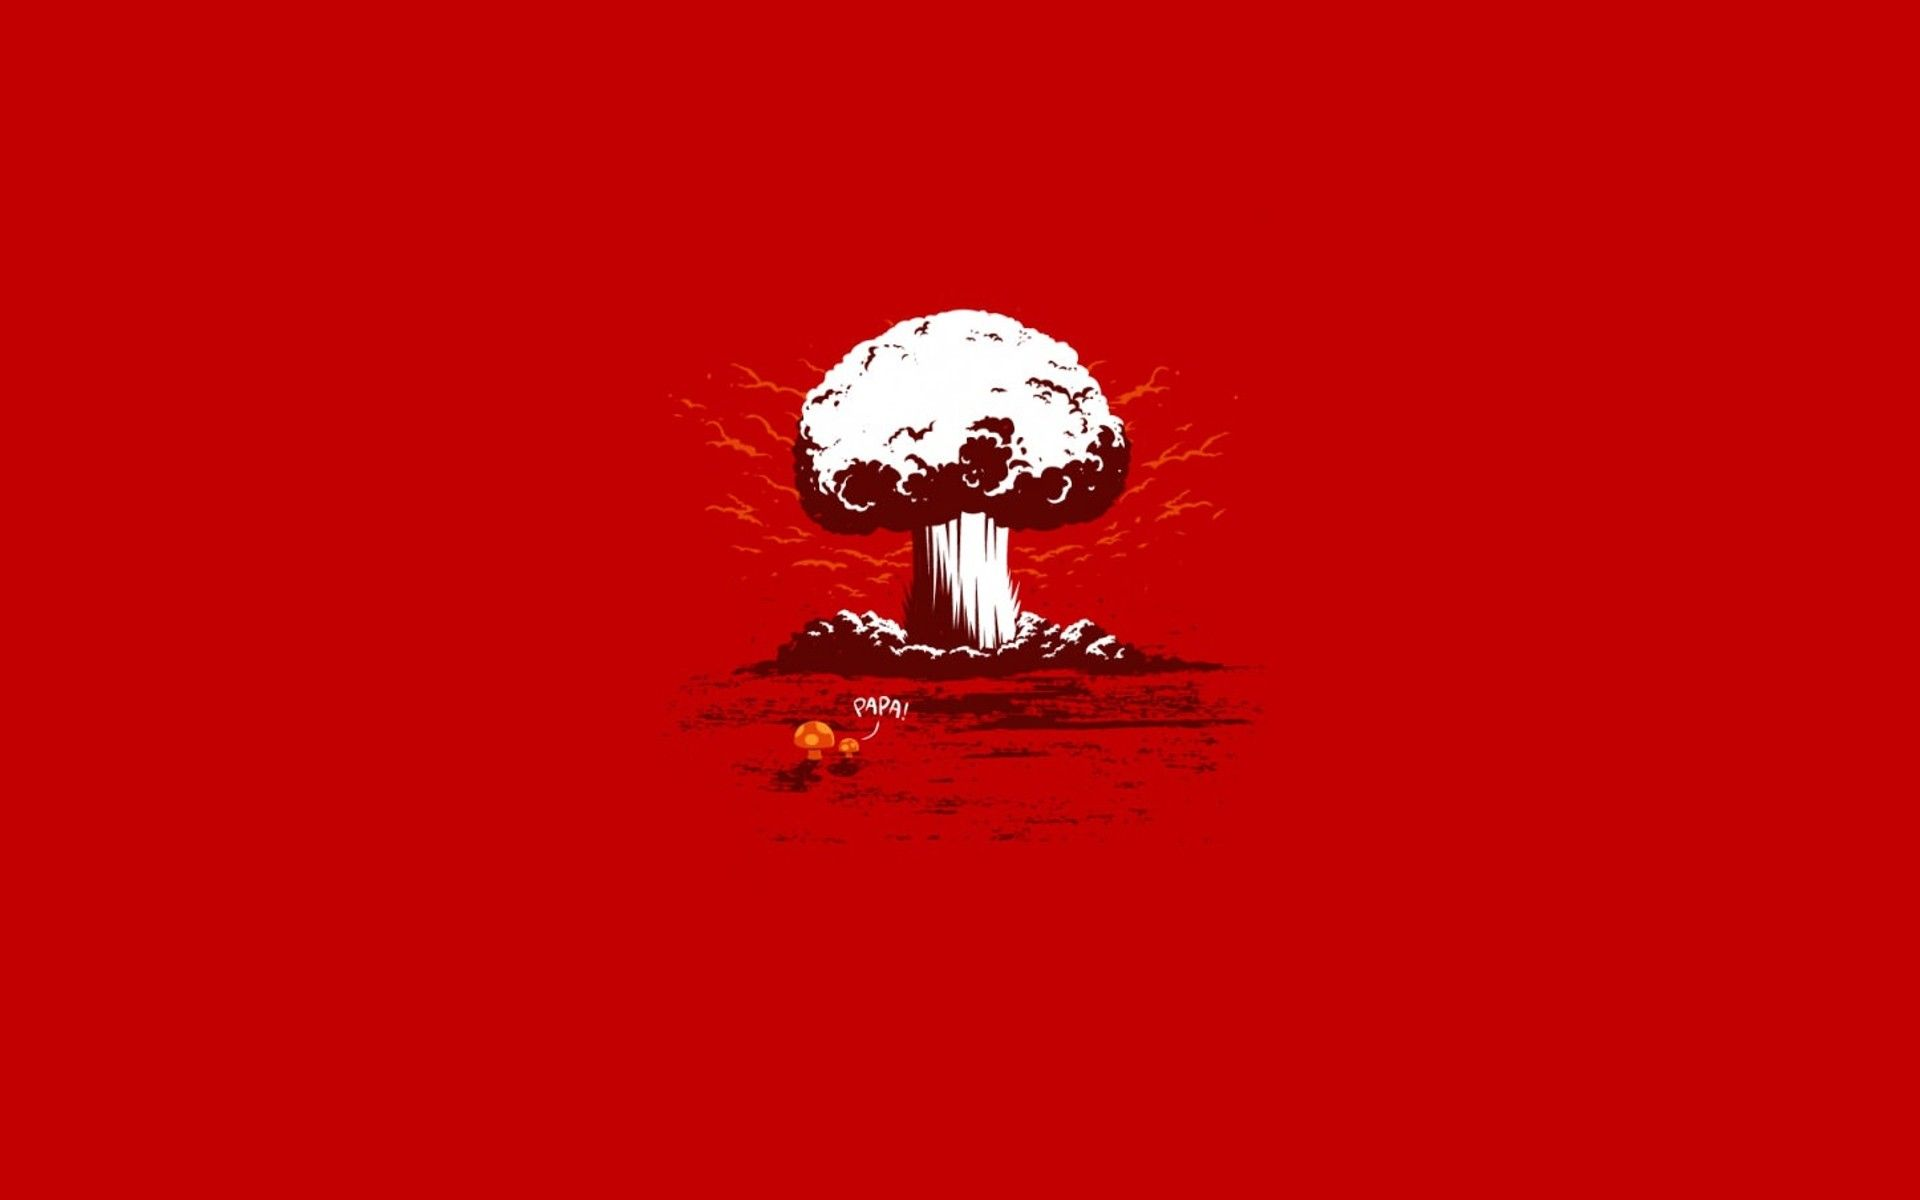 1920x1200 minimalistic, funny, typography, nuclear explosions, red background ...